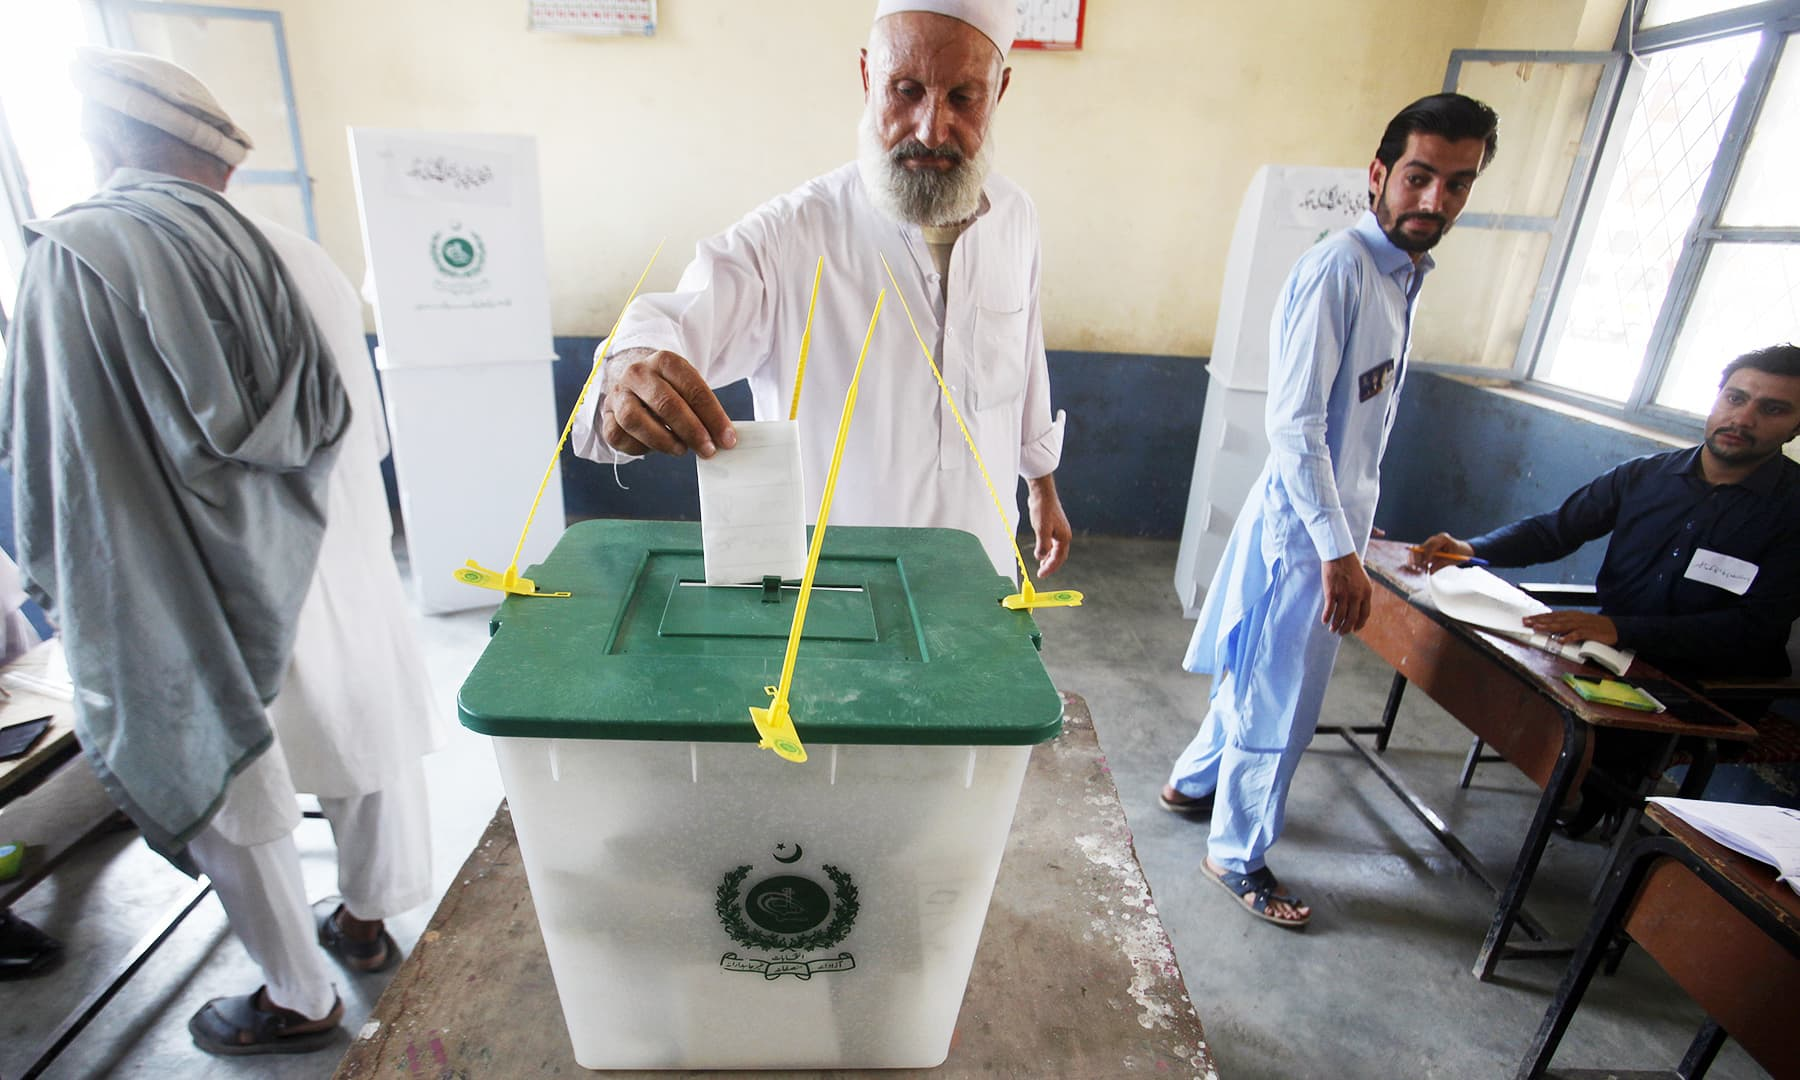 A tribesman casts his vote during an election for provincial seats in Jamrud, a town of Khyber district. — AP